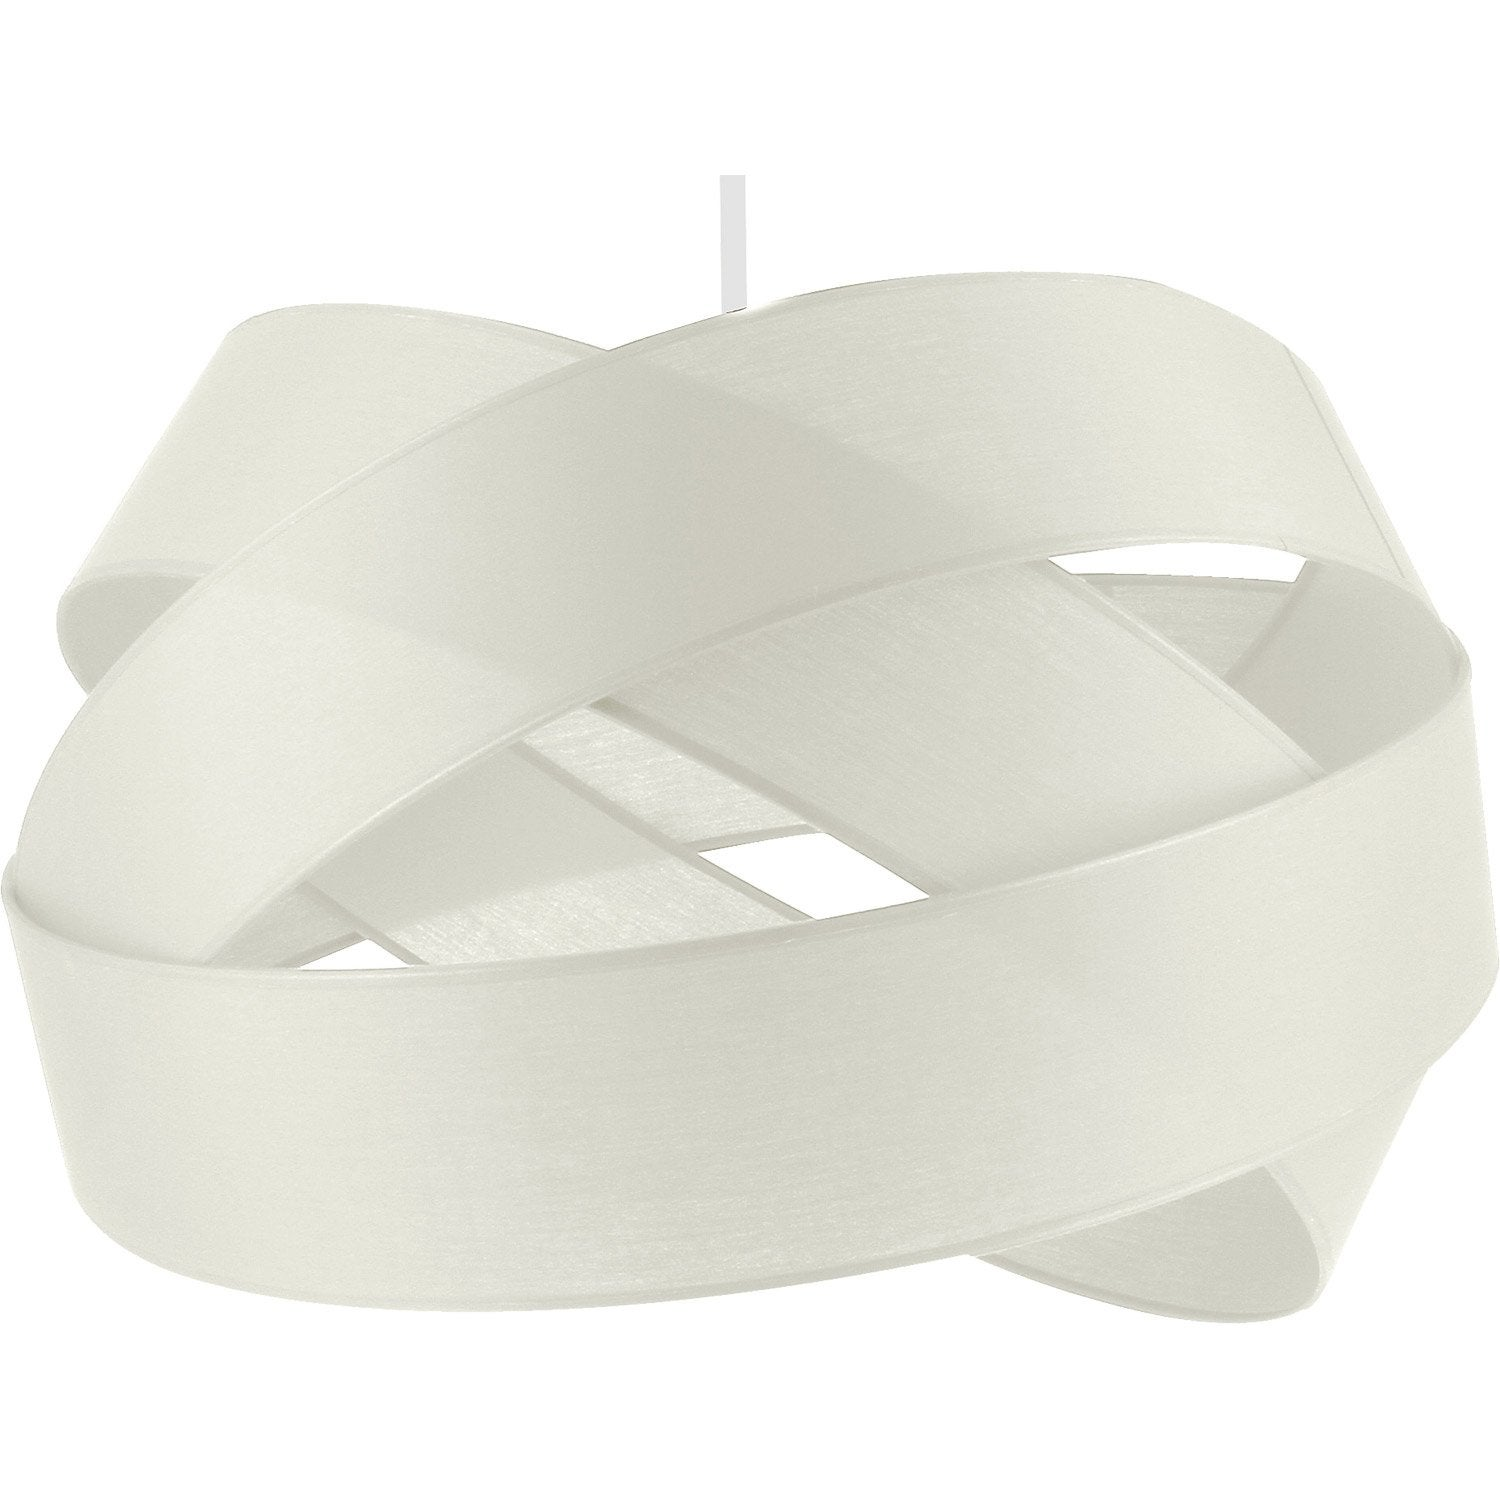 Suspension contemporain bijou gm coton blanc blanc n 1 1 x - Suspension luminaire leroy merlin ...